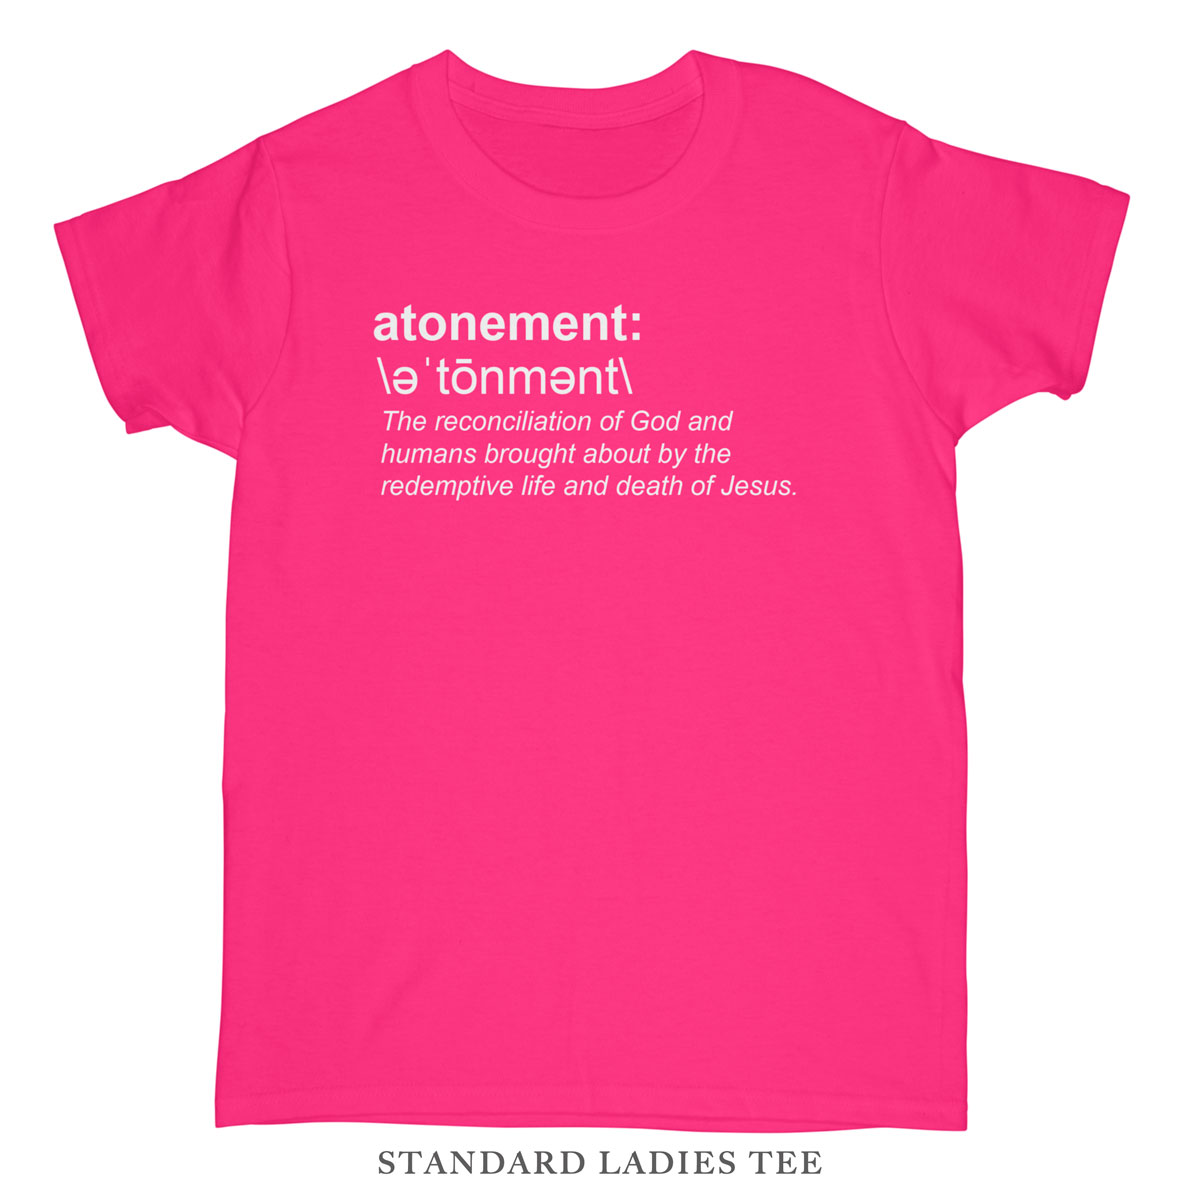 atonement (definition) ladies tee | missional wear